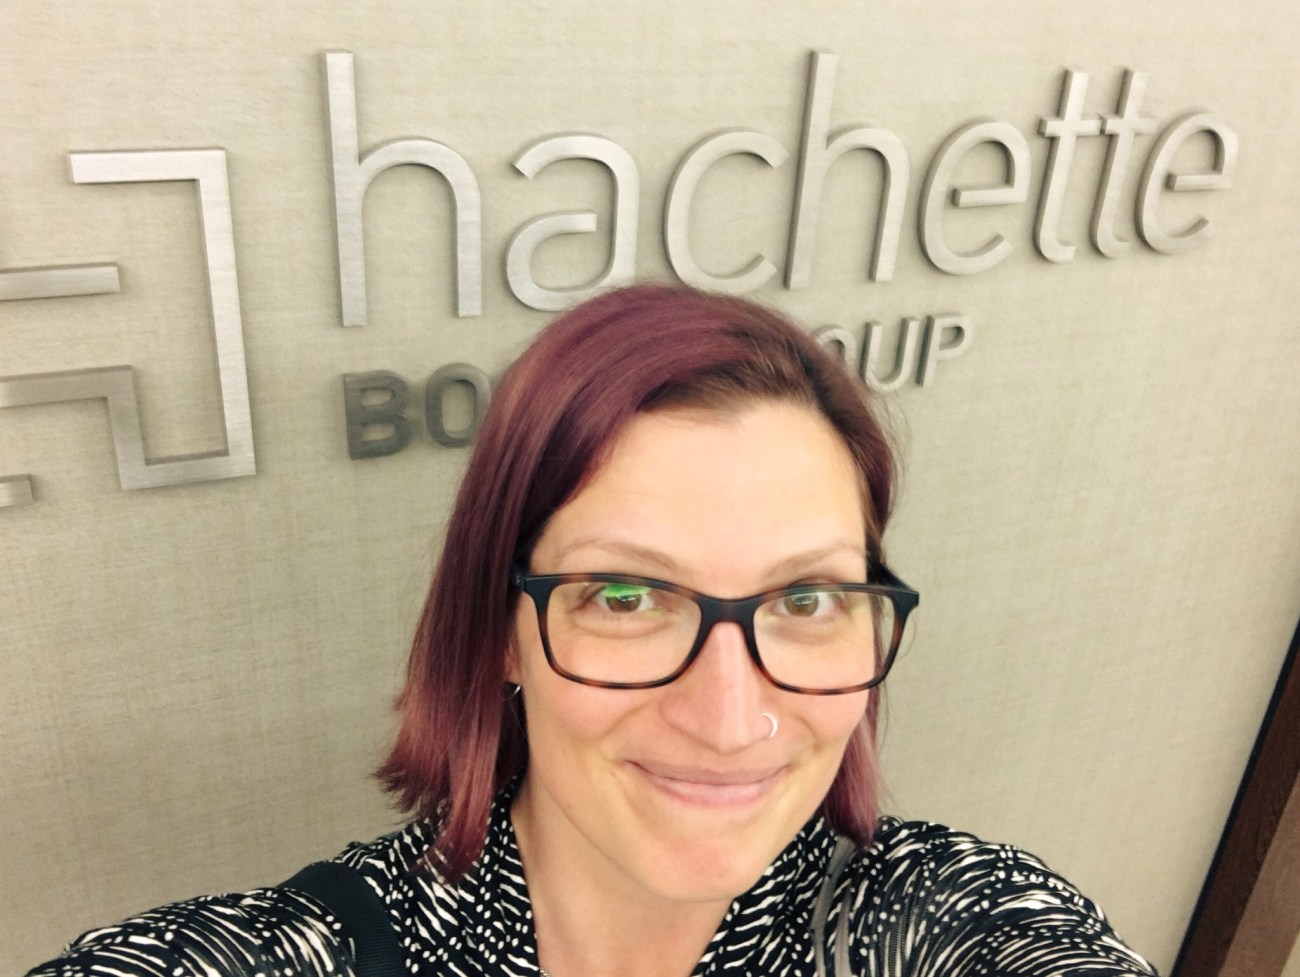 Tanja Hester at Hachette Book Group